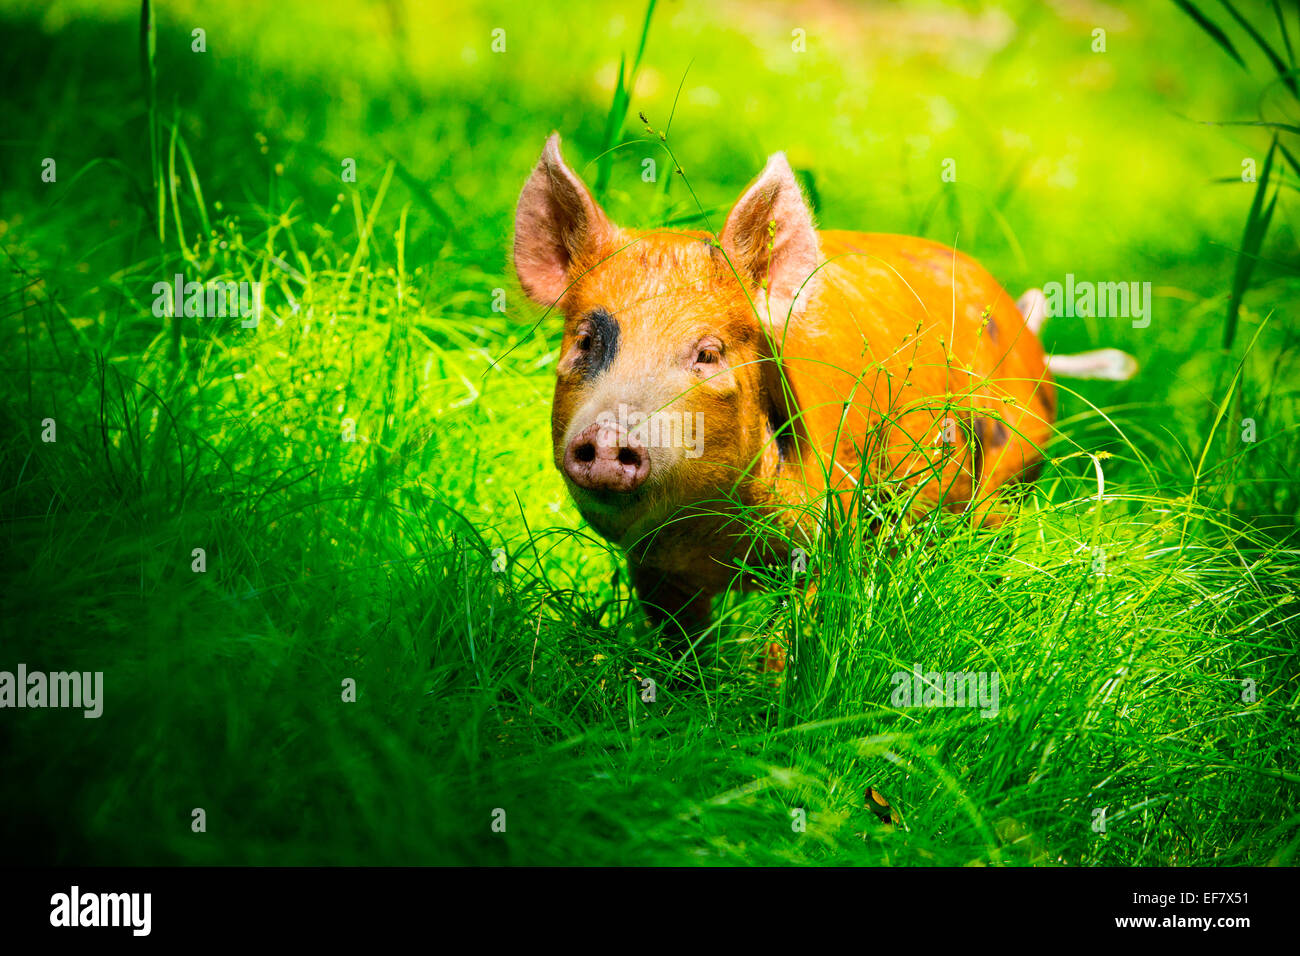 Free range juvenile tamworth pig roaming in sunlit grass Stock Photo